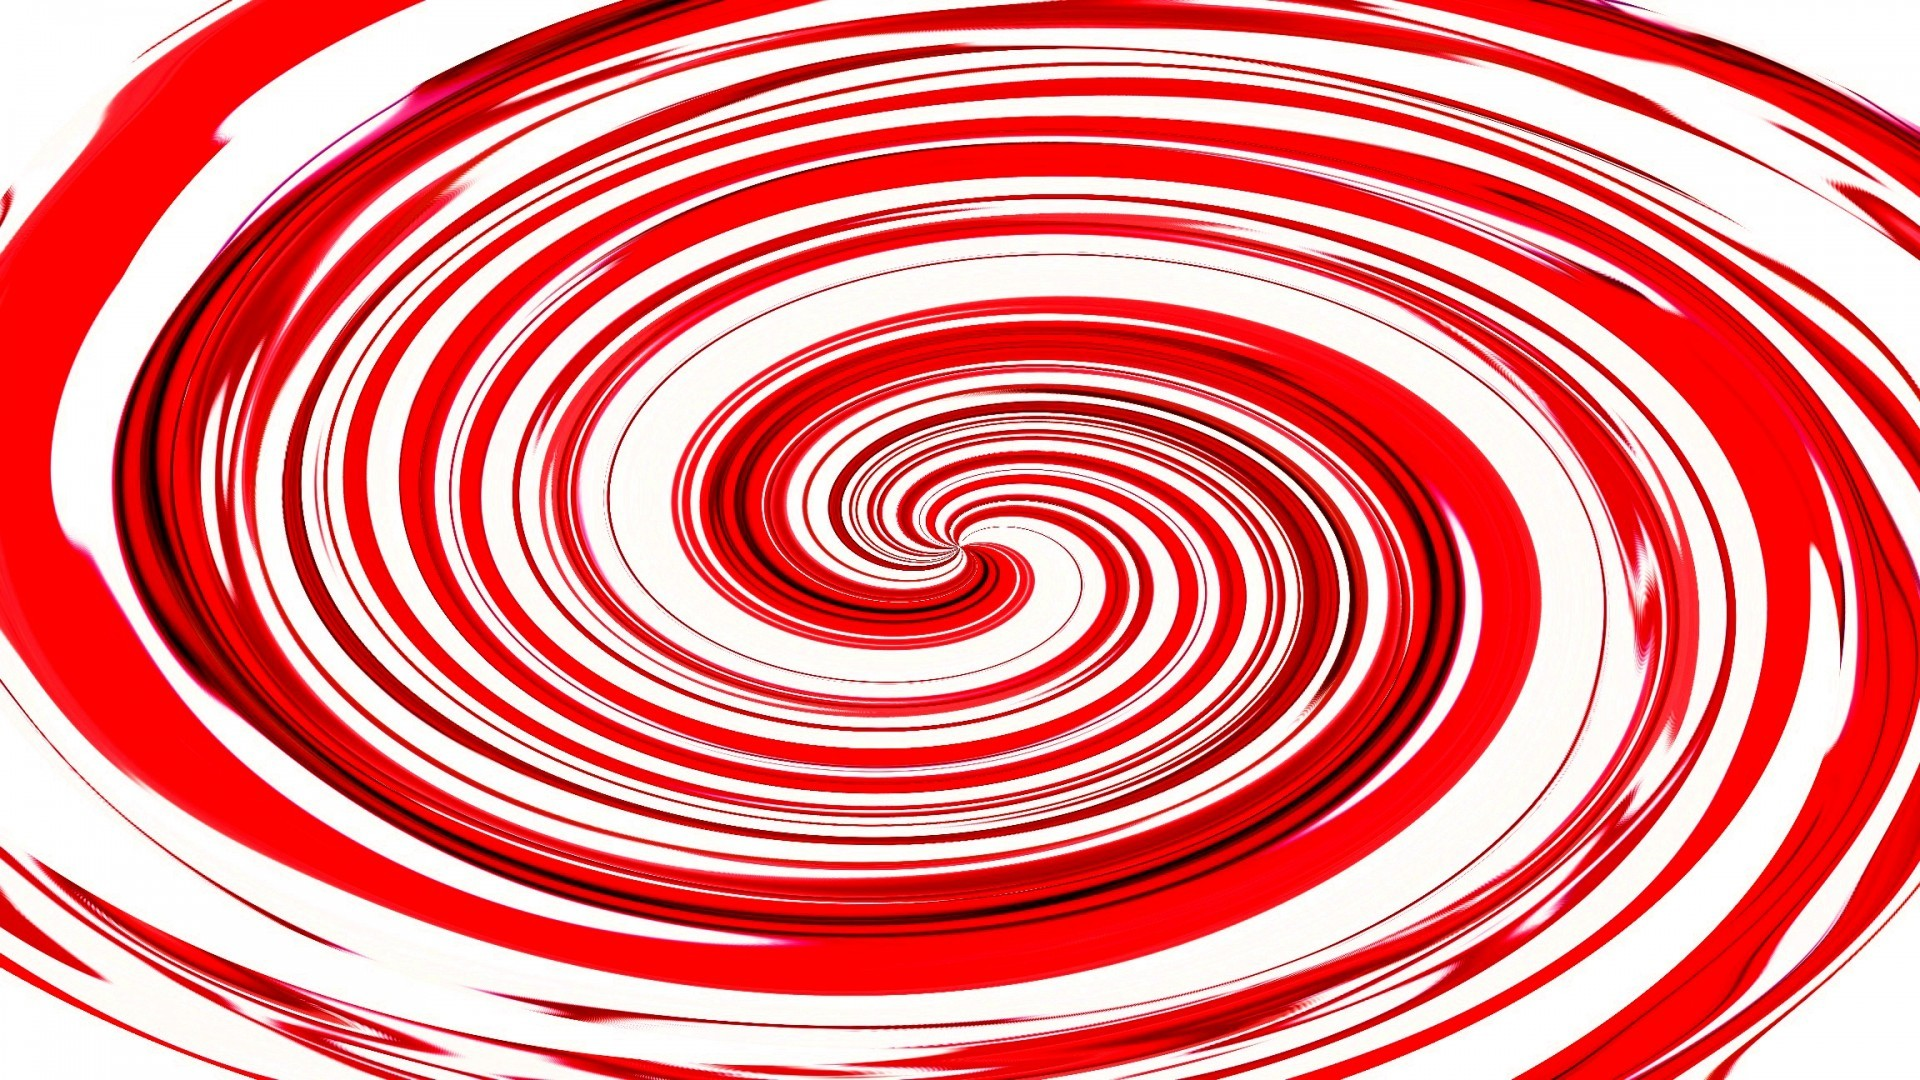 Red Swirl Background Free Stock Photo – Public Domain Pictures